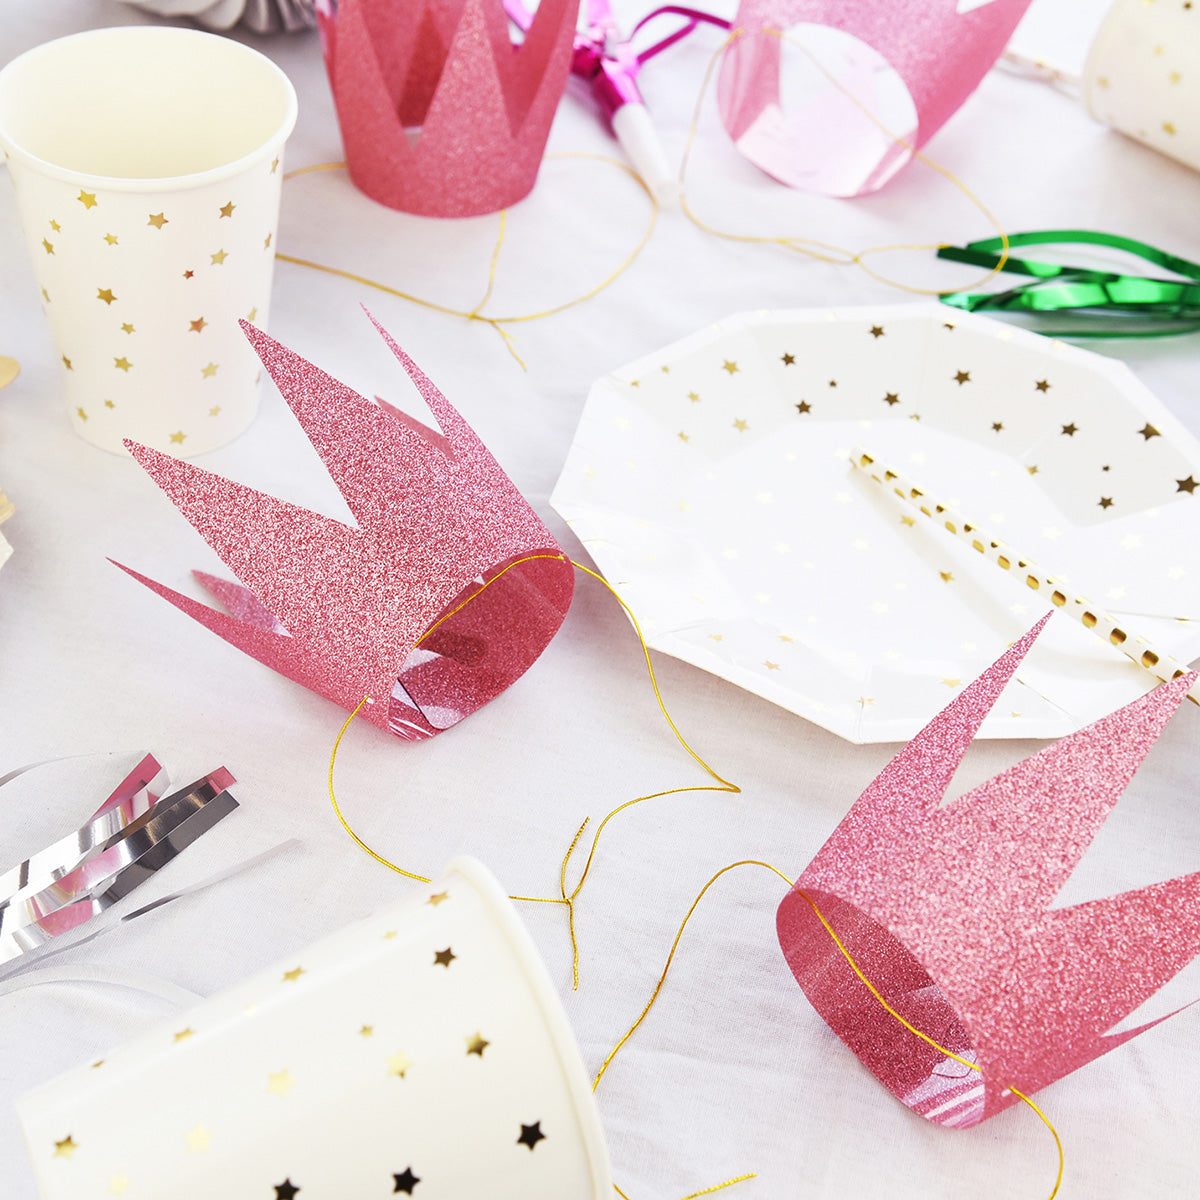 24 Pink Glittery (Princess) Crown Party Hats